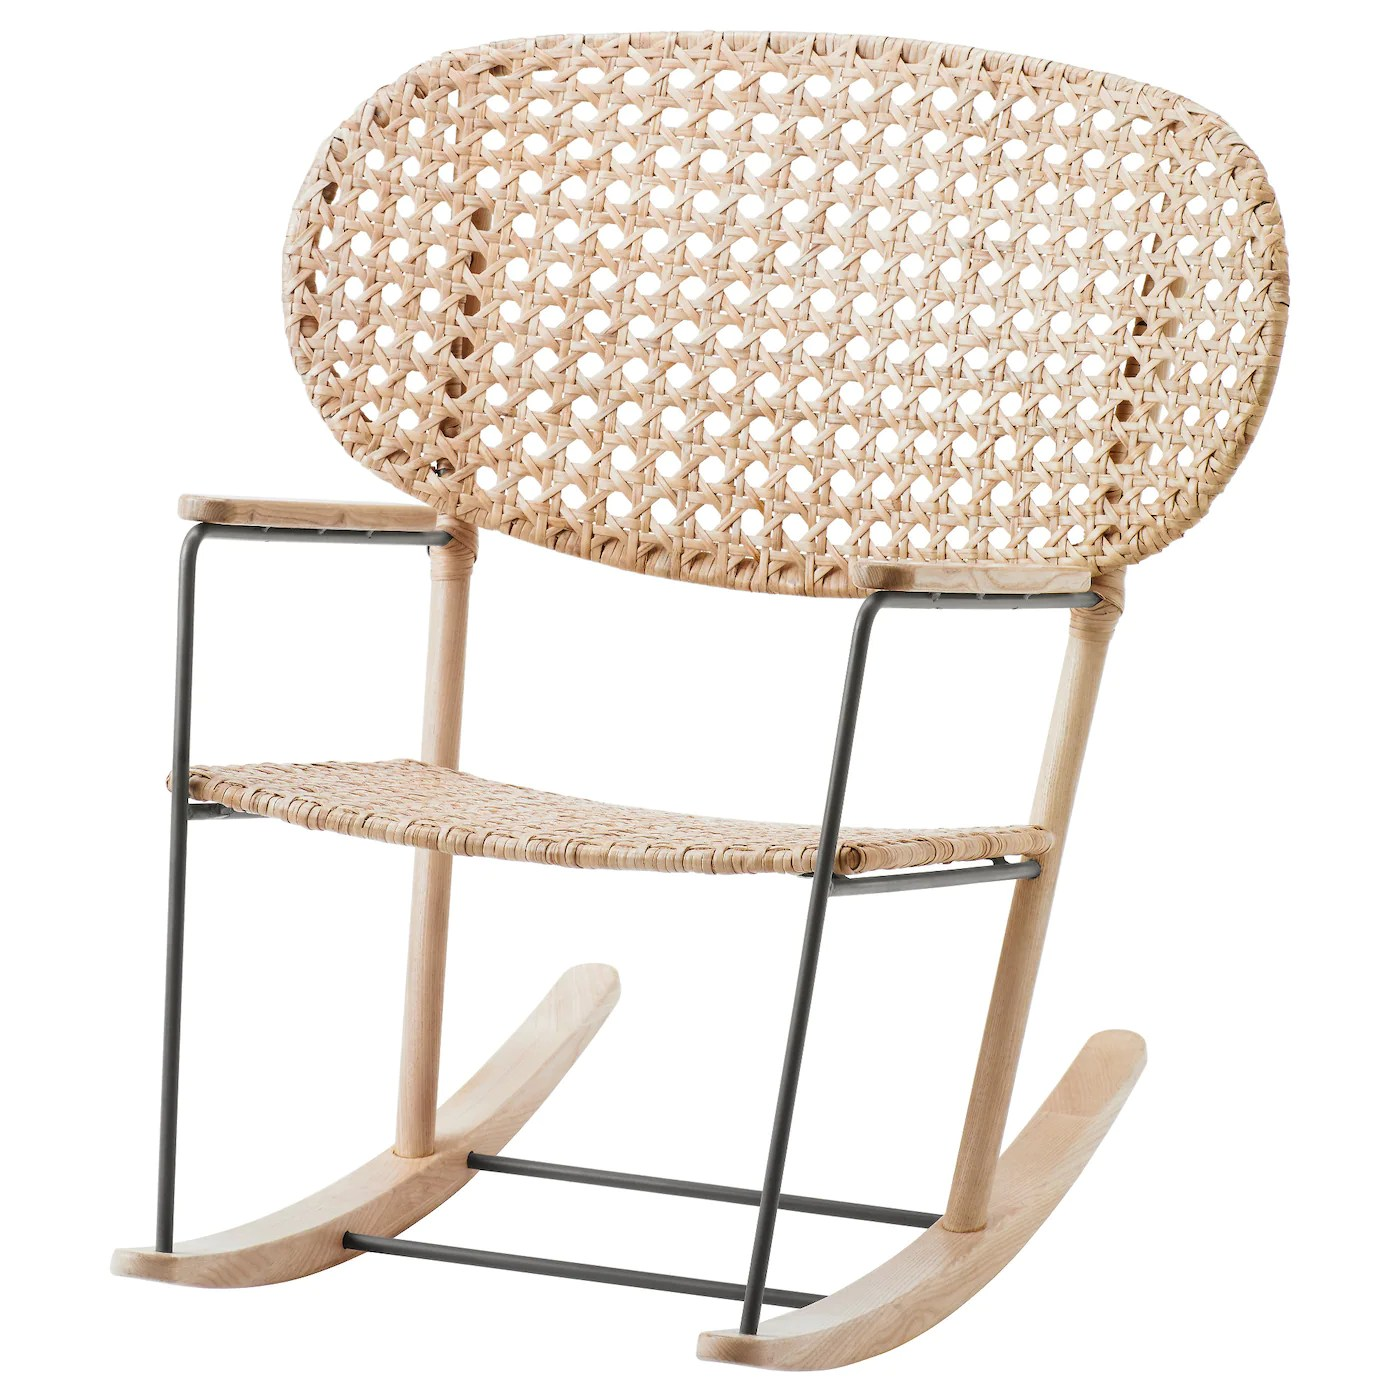 rattan chair ikea plantation cushions gronadal rocking grey natural made from and ash materials that age with